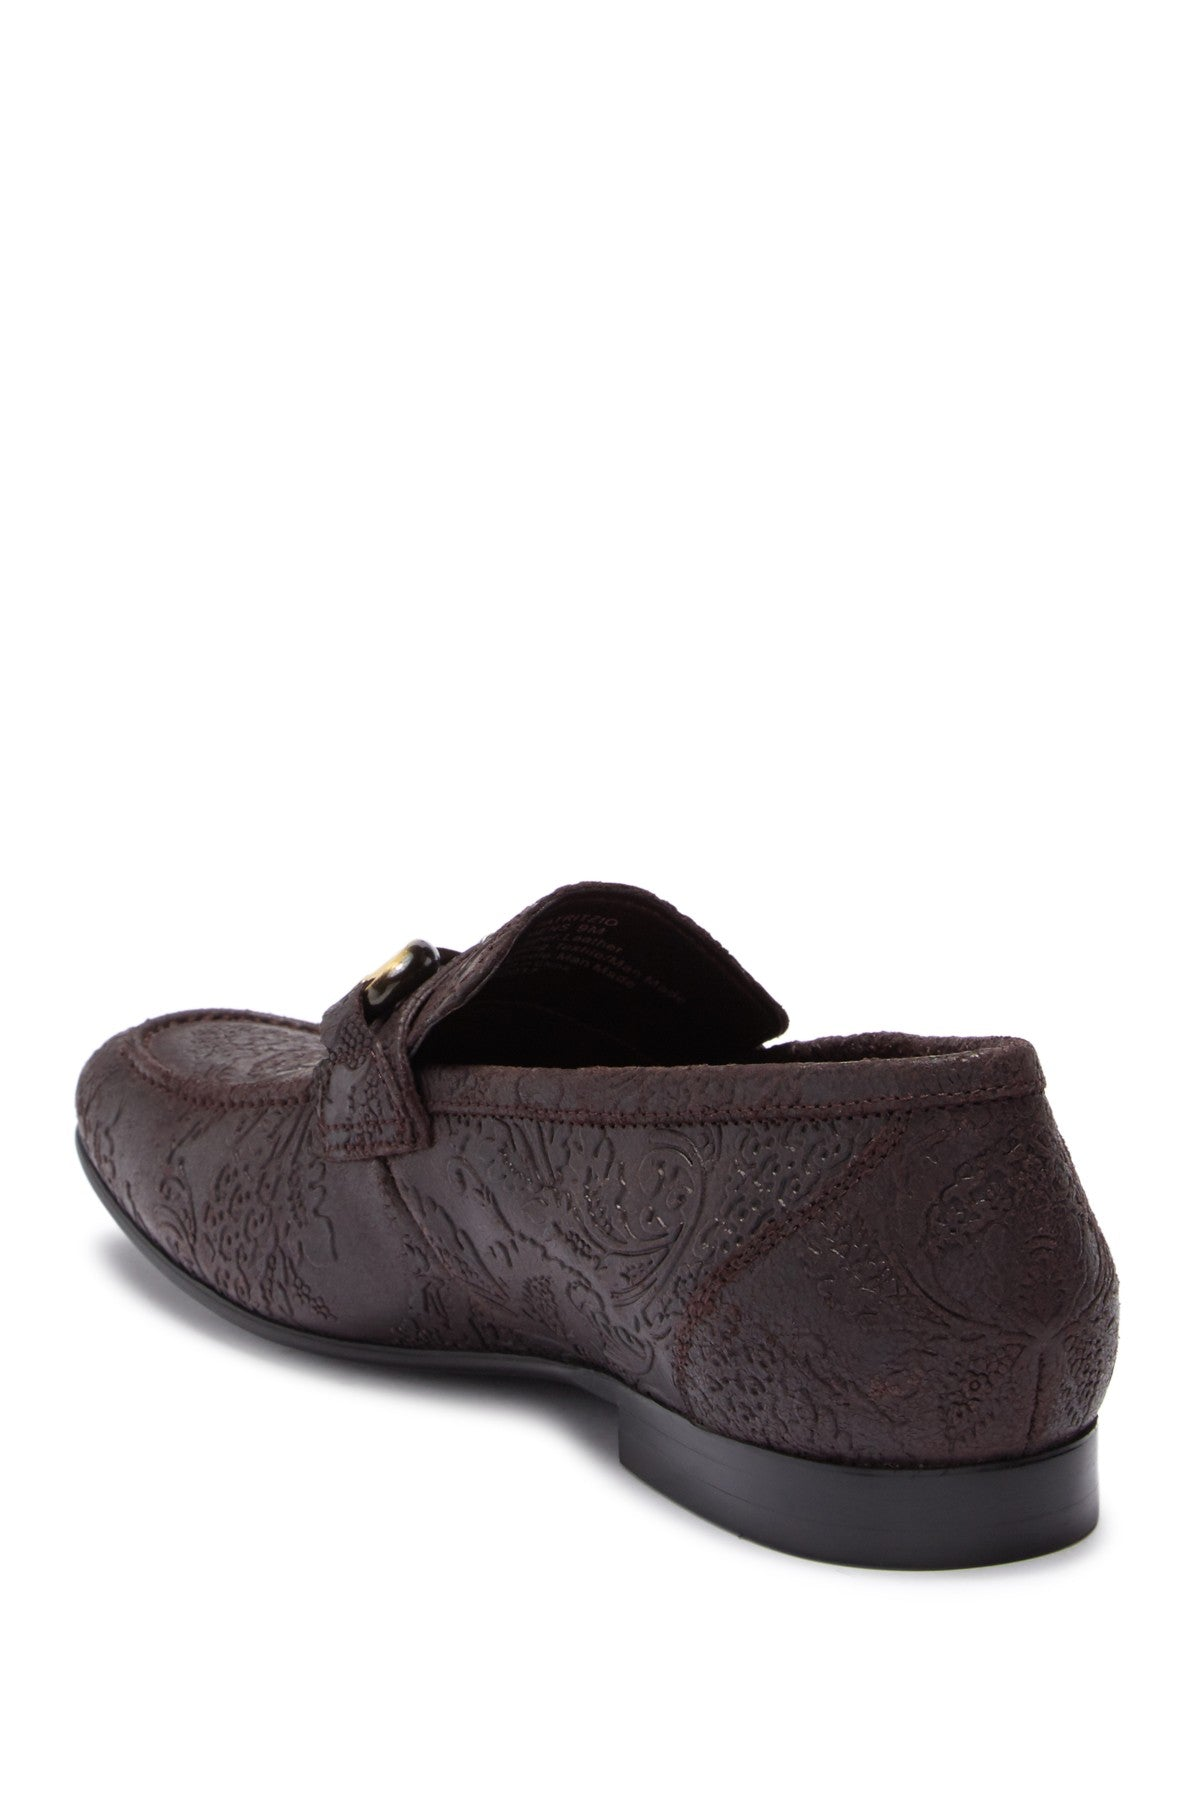 Tallia Patrizio Embossed Bit Loafer